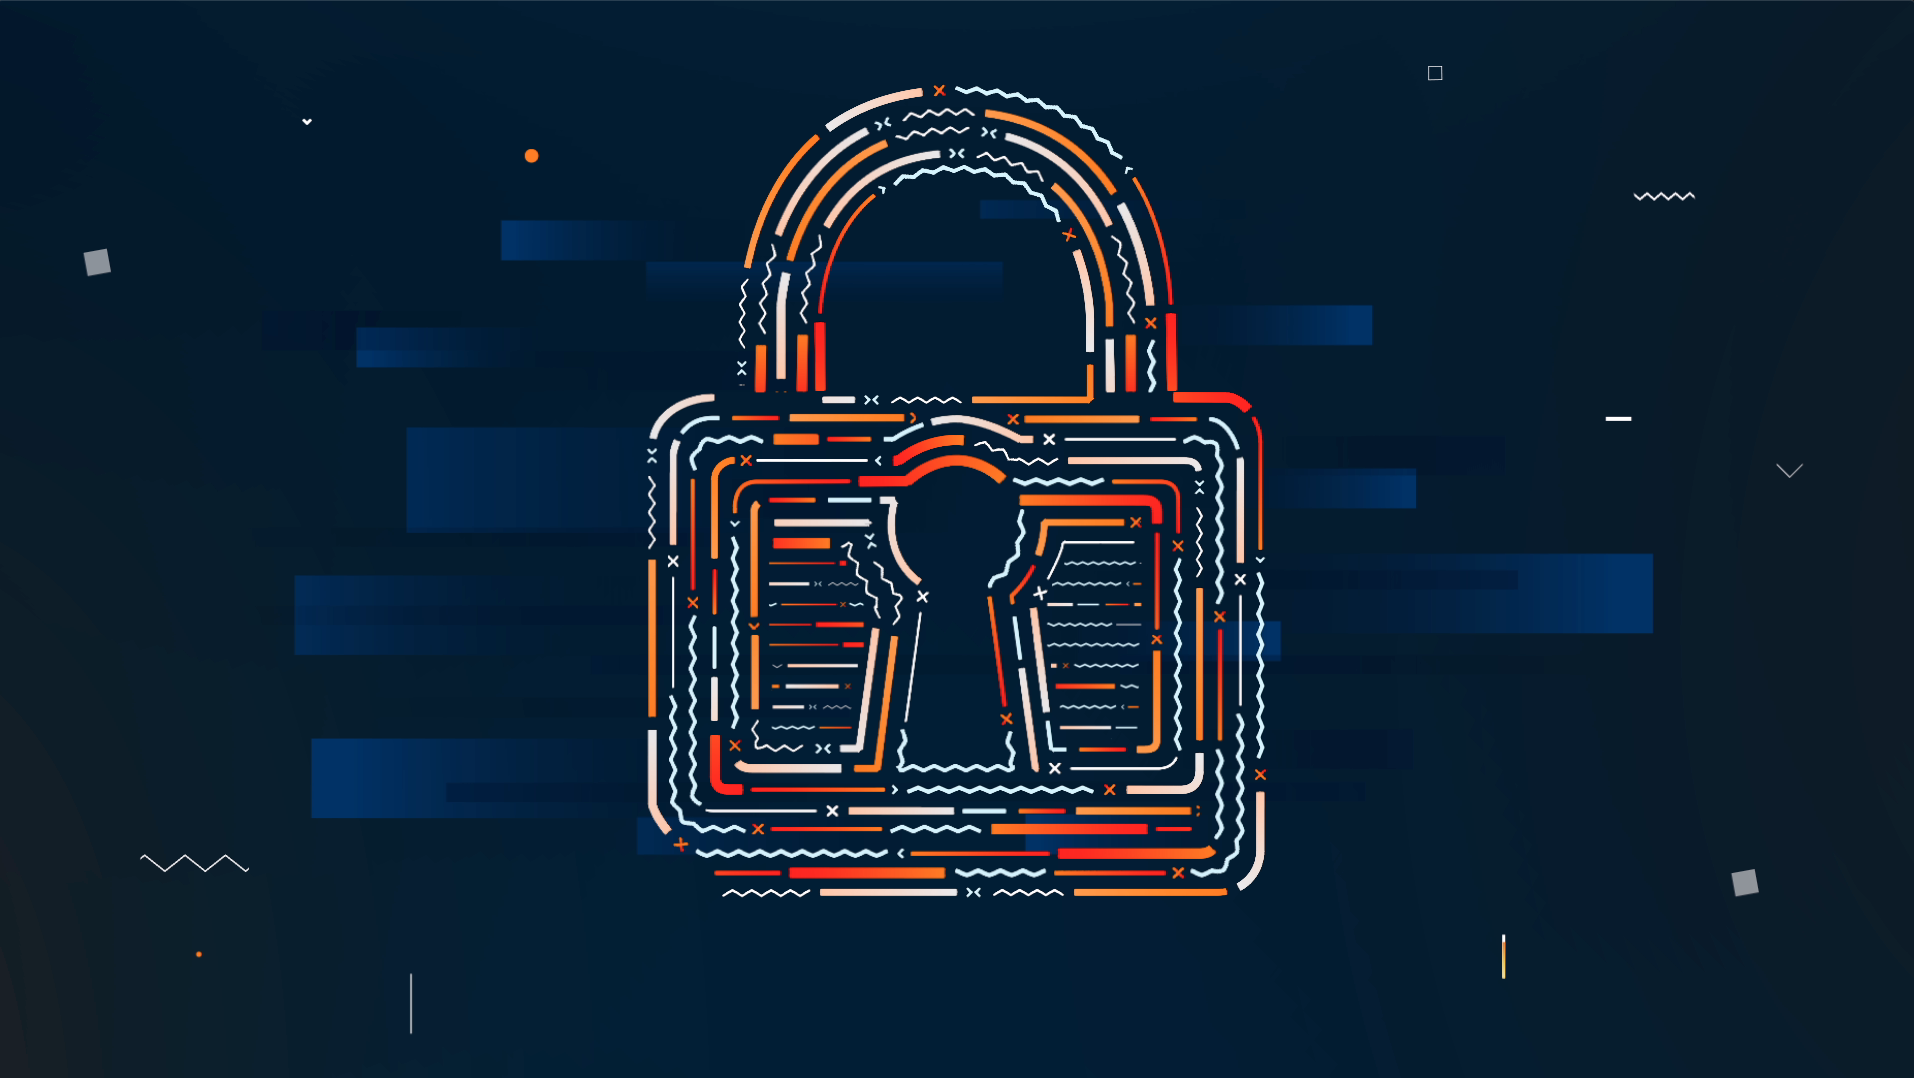 CYBERSECURITY CAMPAIGN